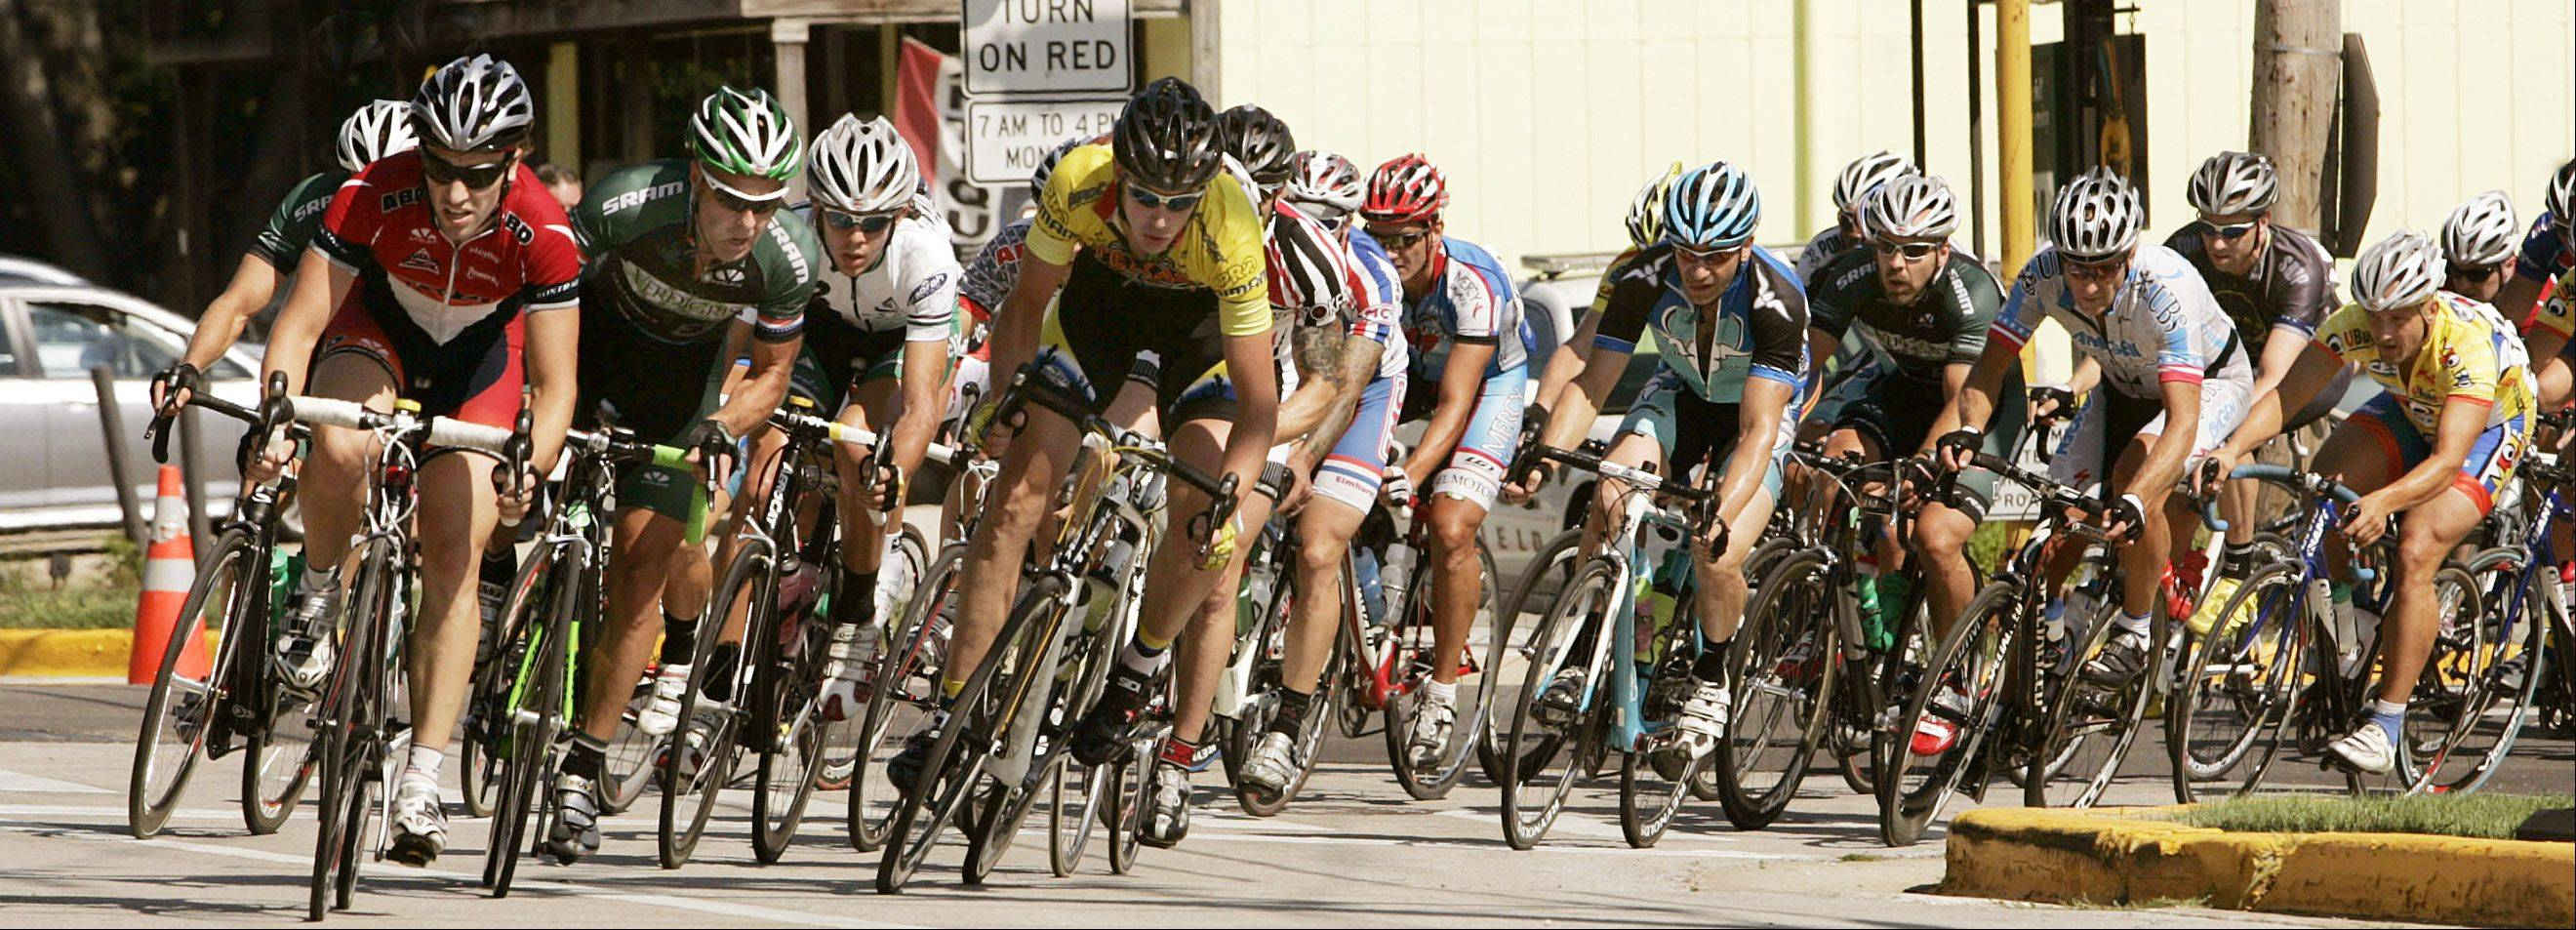 Hundreds of cyclists from throughout the Midwest are expected to compete a series of races this weekend as part of the 13th annual Winfield Criterium.